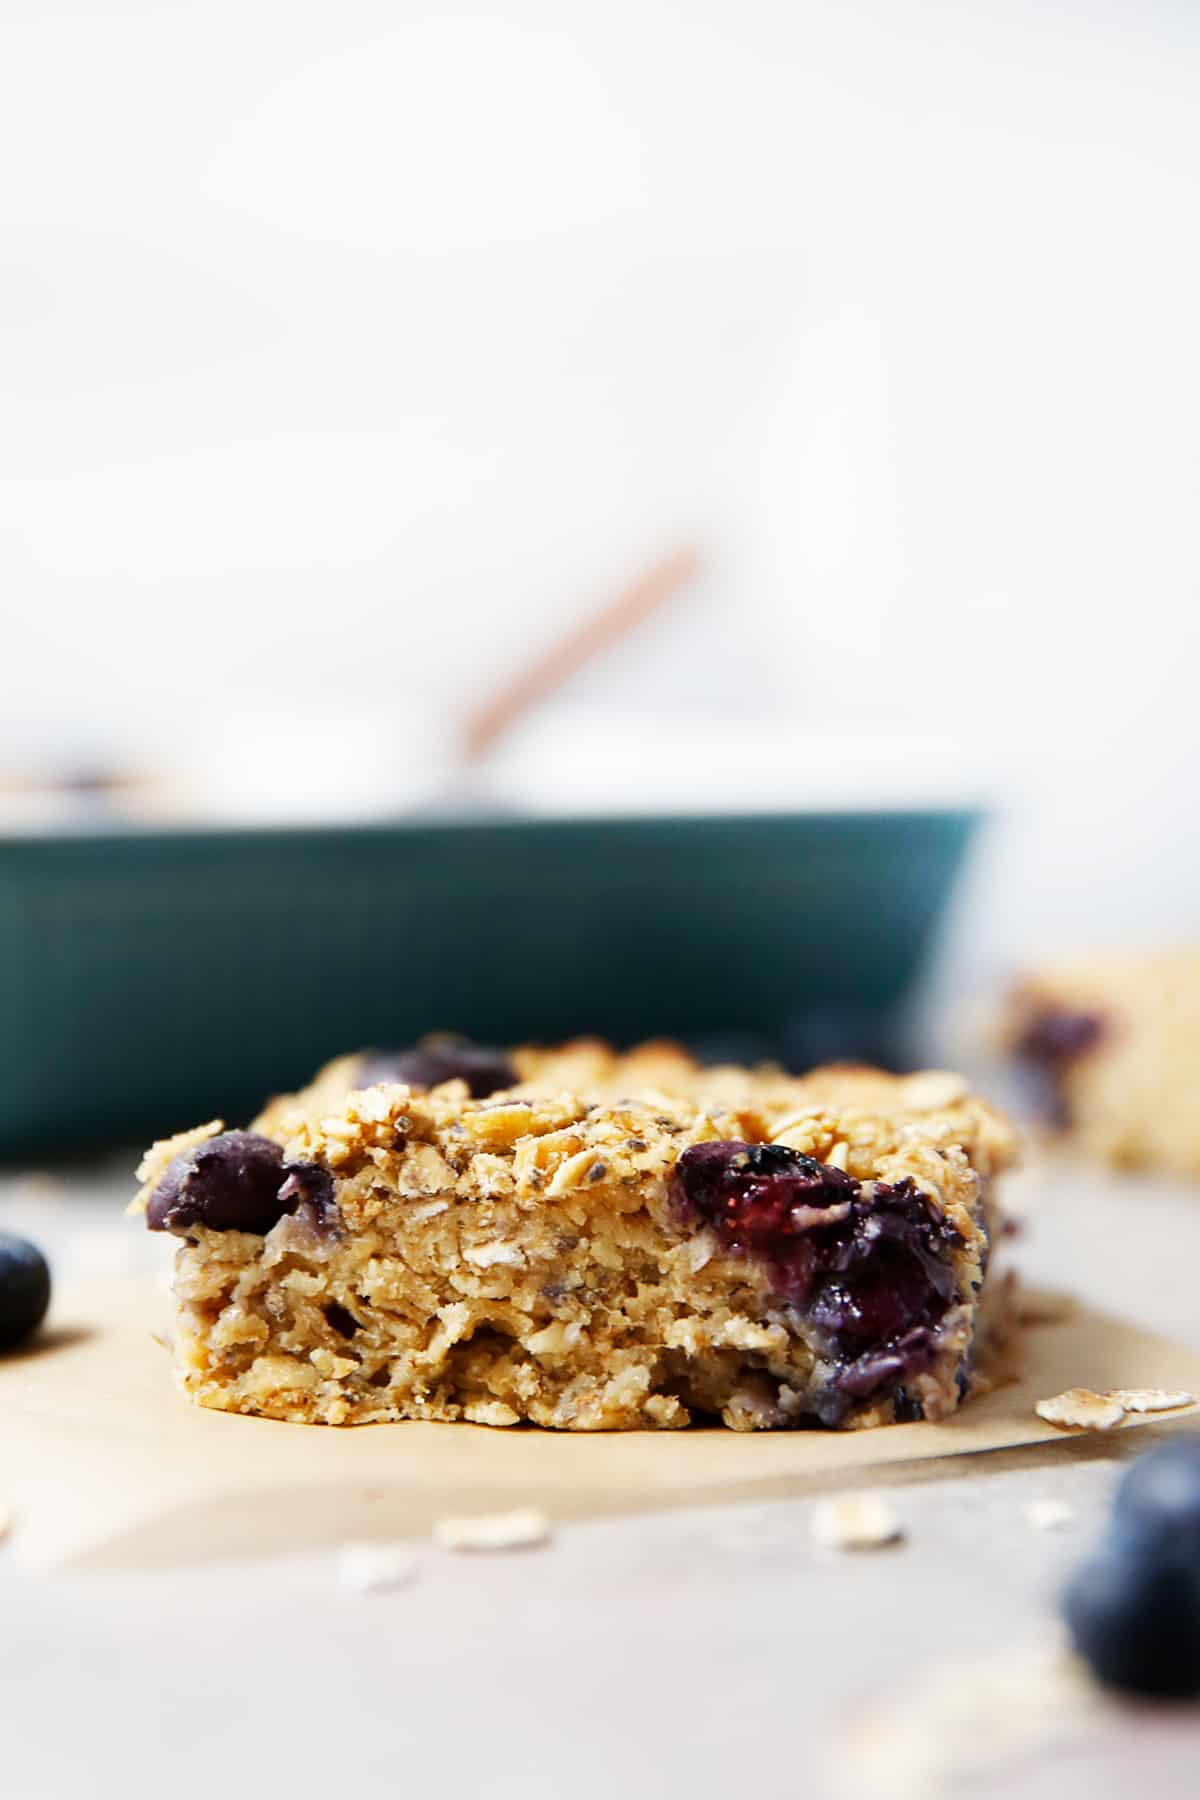 Up close shot of blueberry oatmeal bake